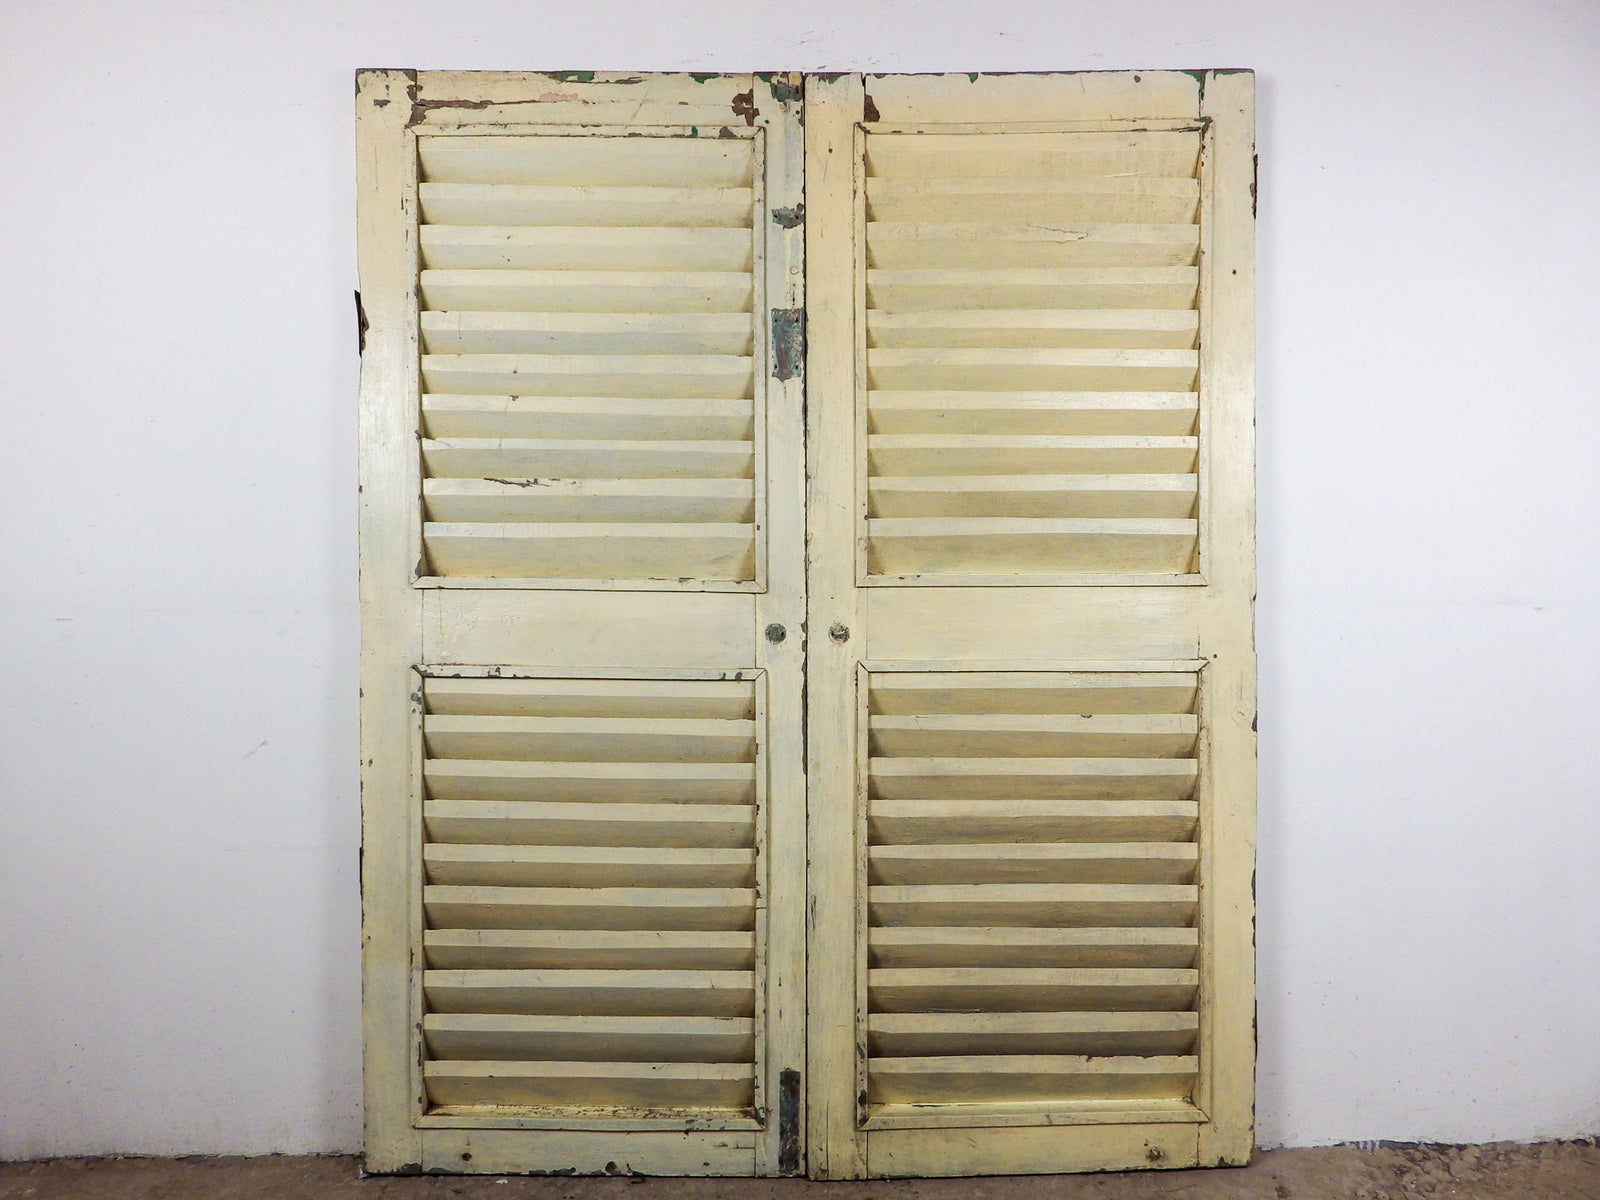 MILL-894/1 Pair of Wooden Shutters C8